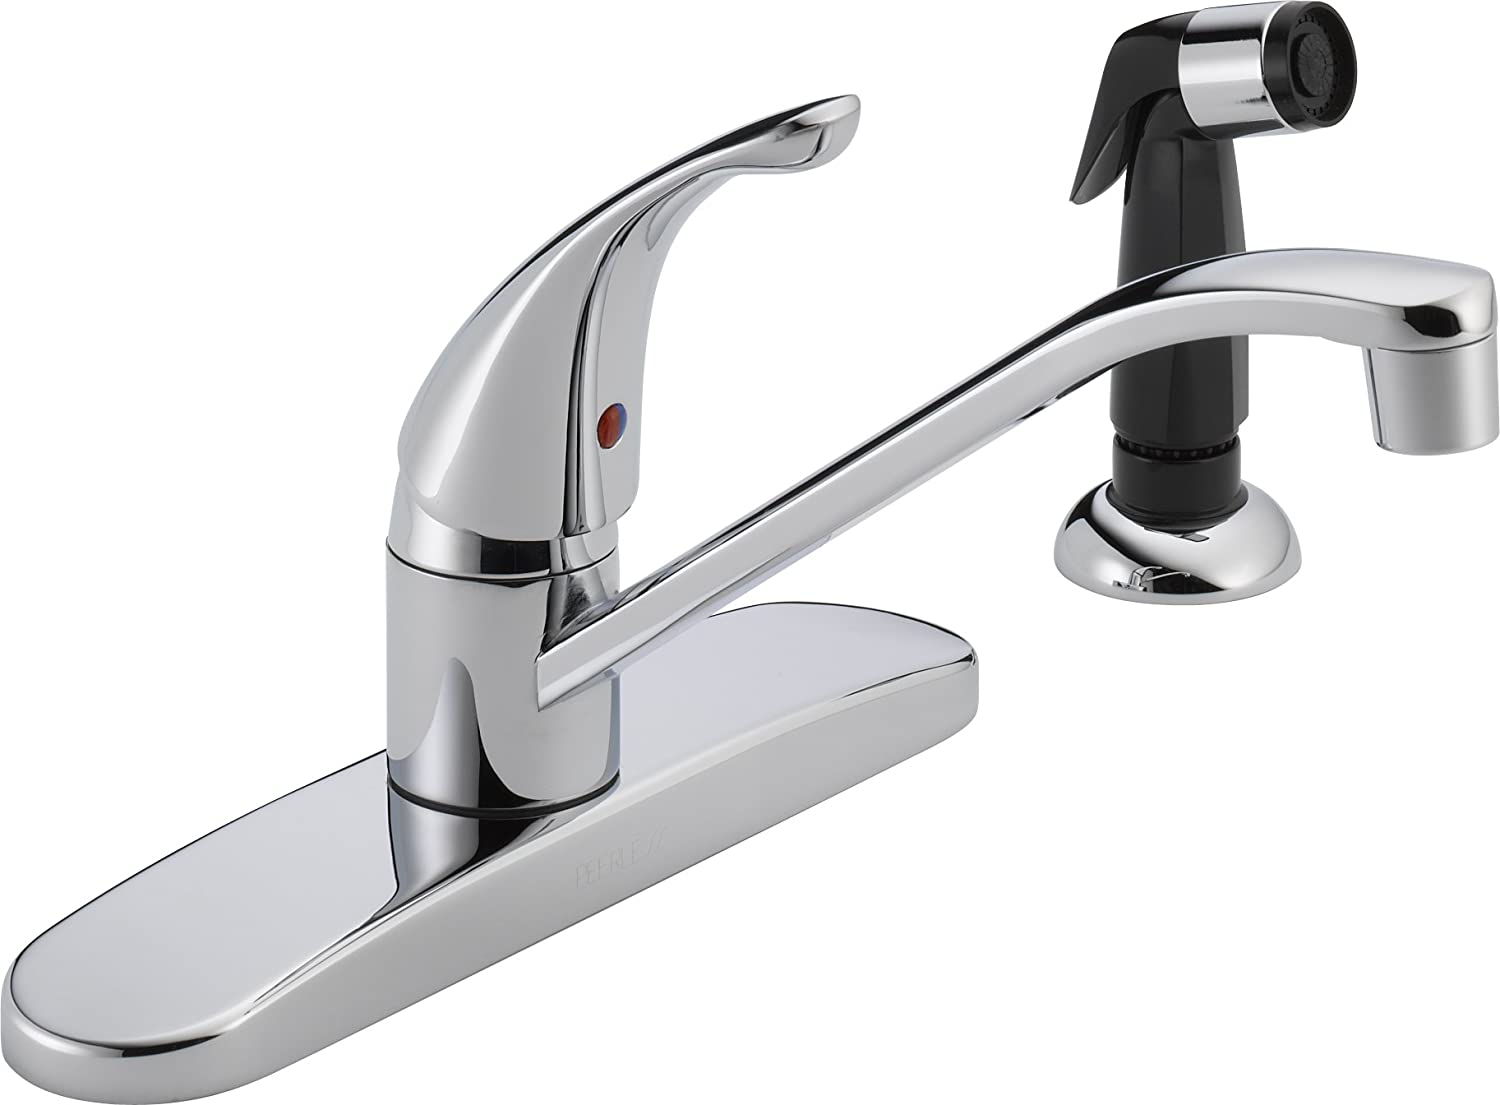 Peerless P115lf Classic Single Handle Kitchen Faucet Chrome Touch